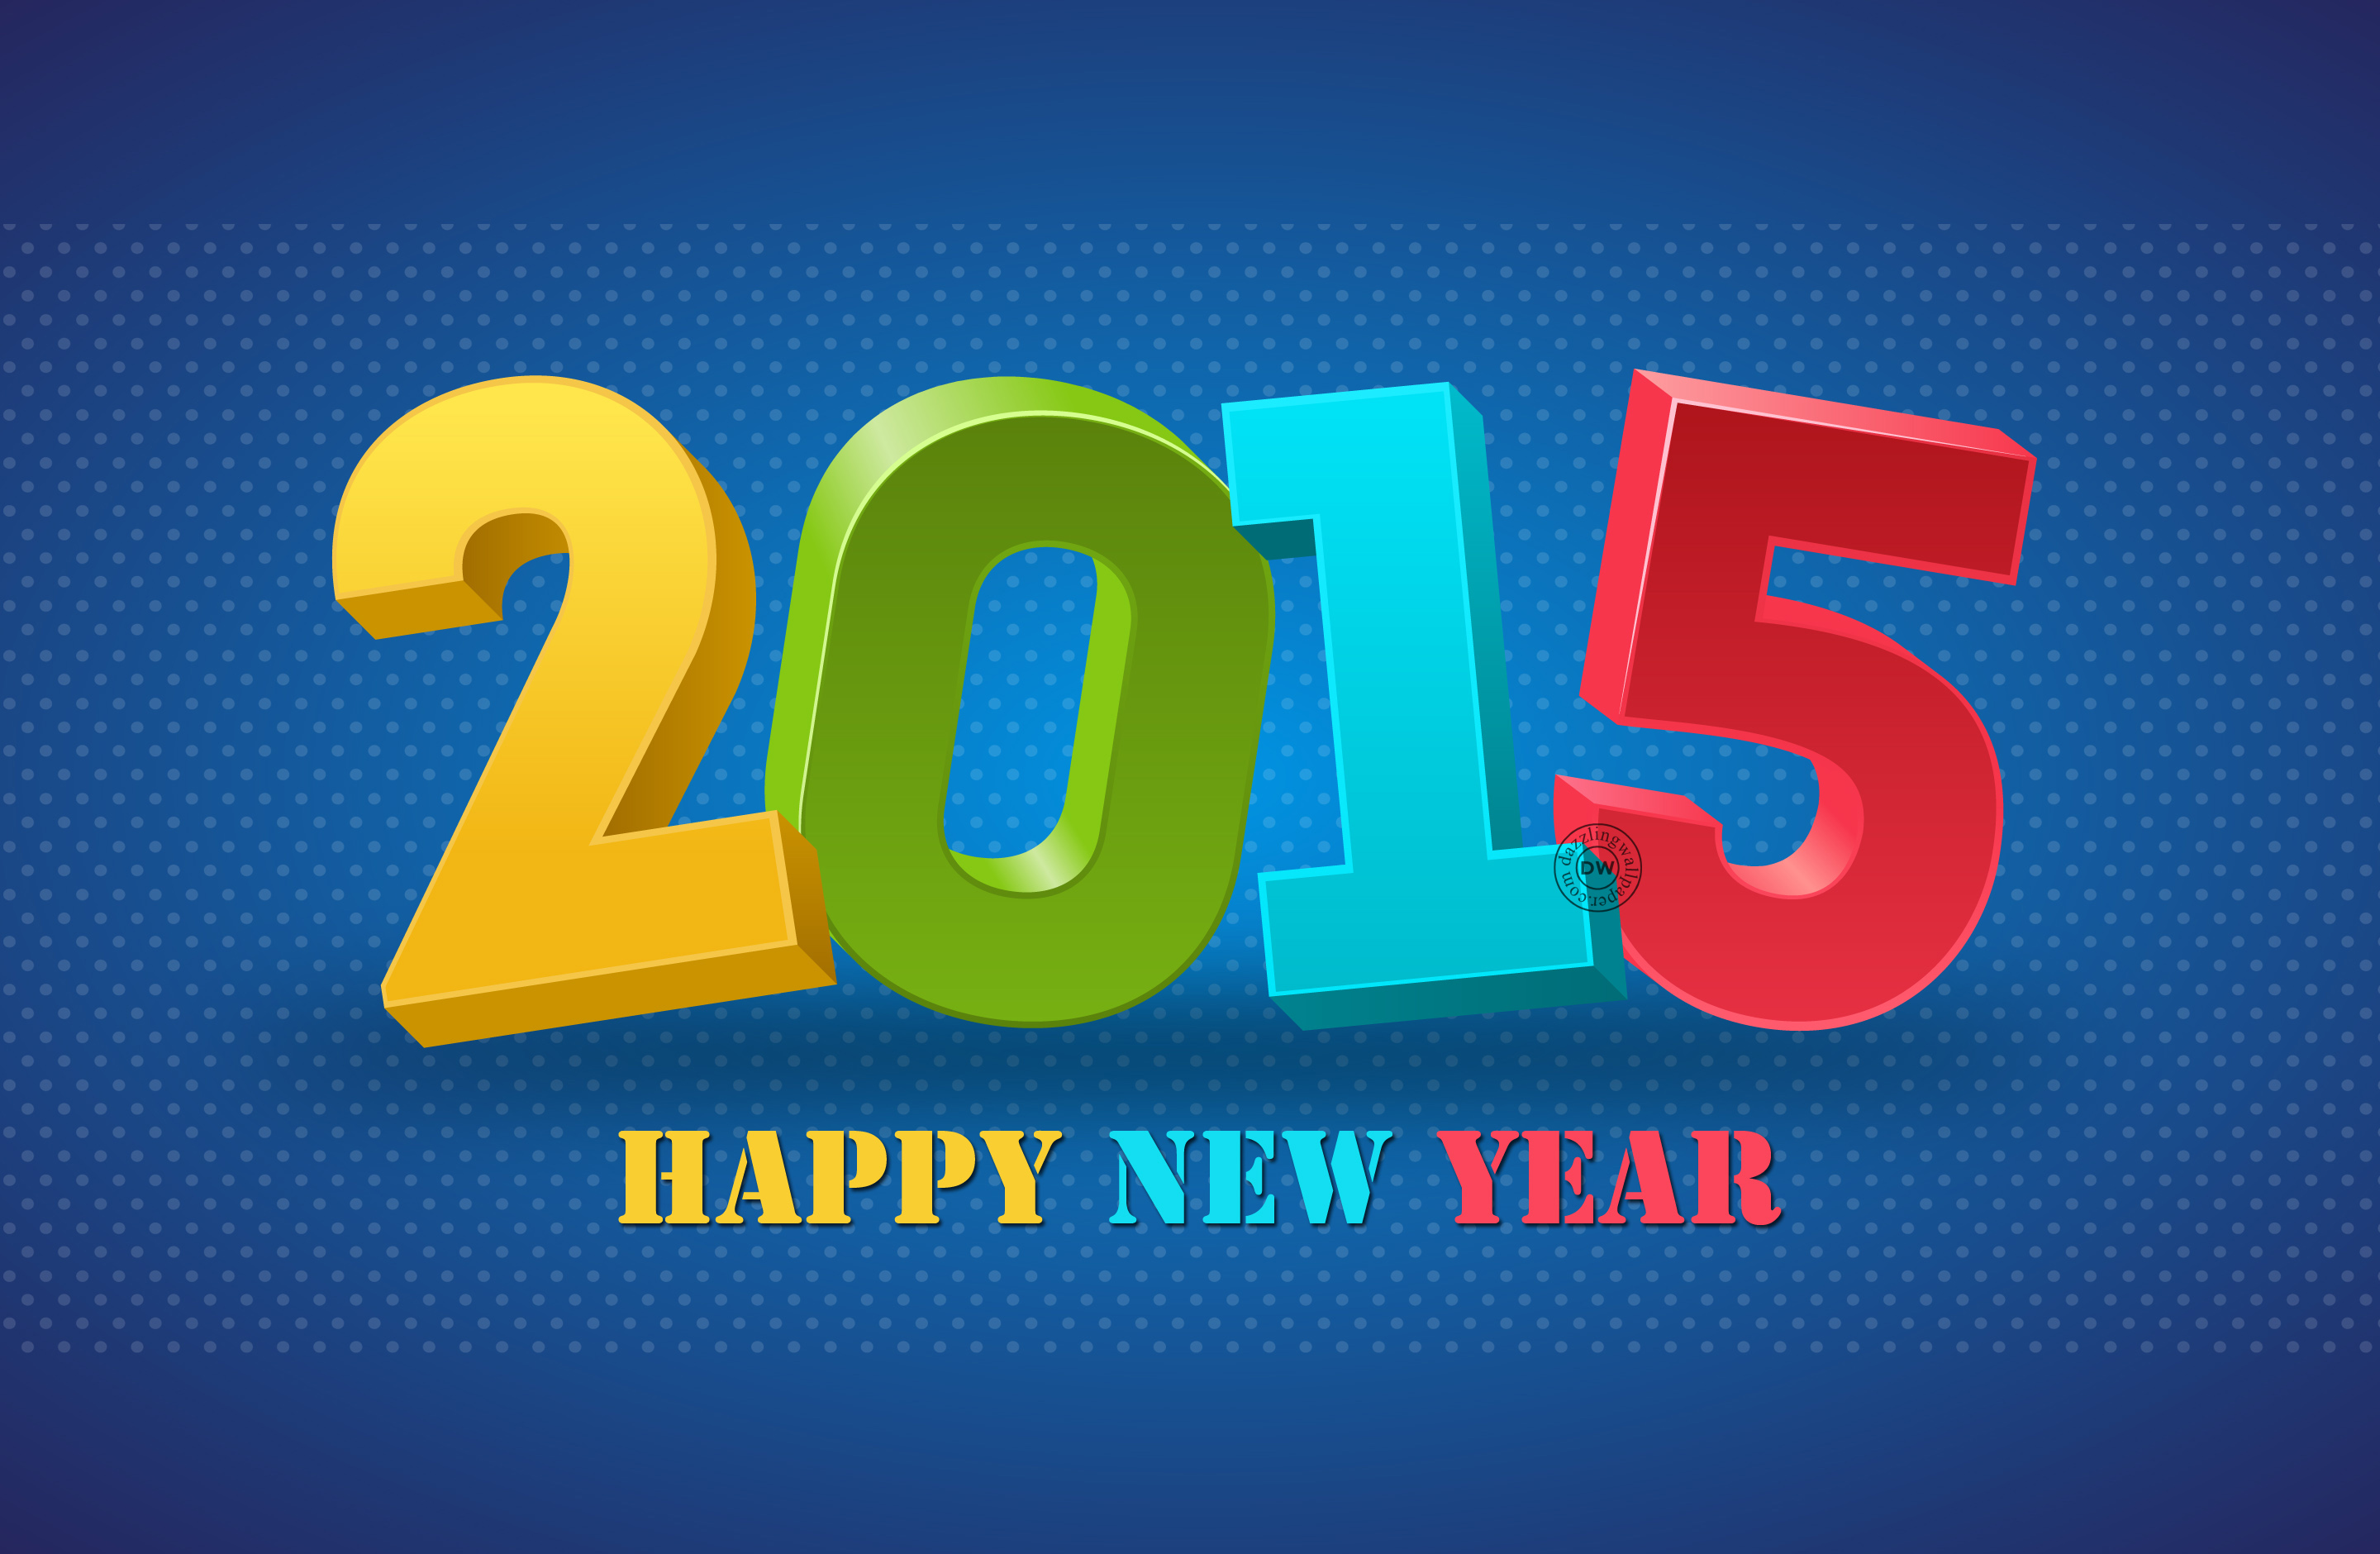 Blue Happy New Year 2015 Wallpapers HD Picture 829829   Ongur 2880x1880